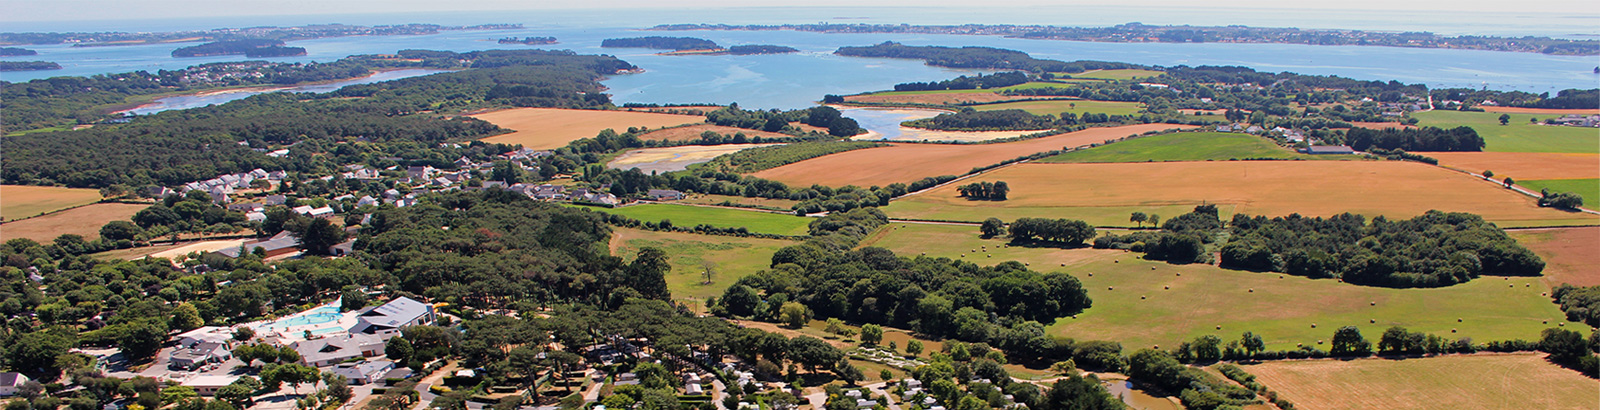 Ideally located in the Gulf of Morbihan